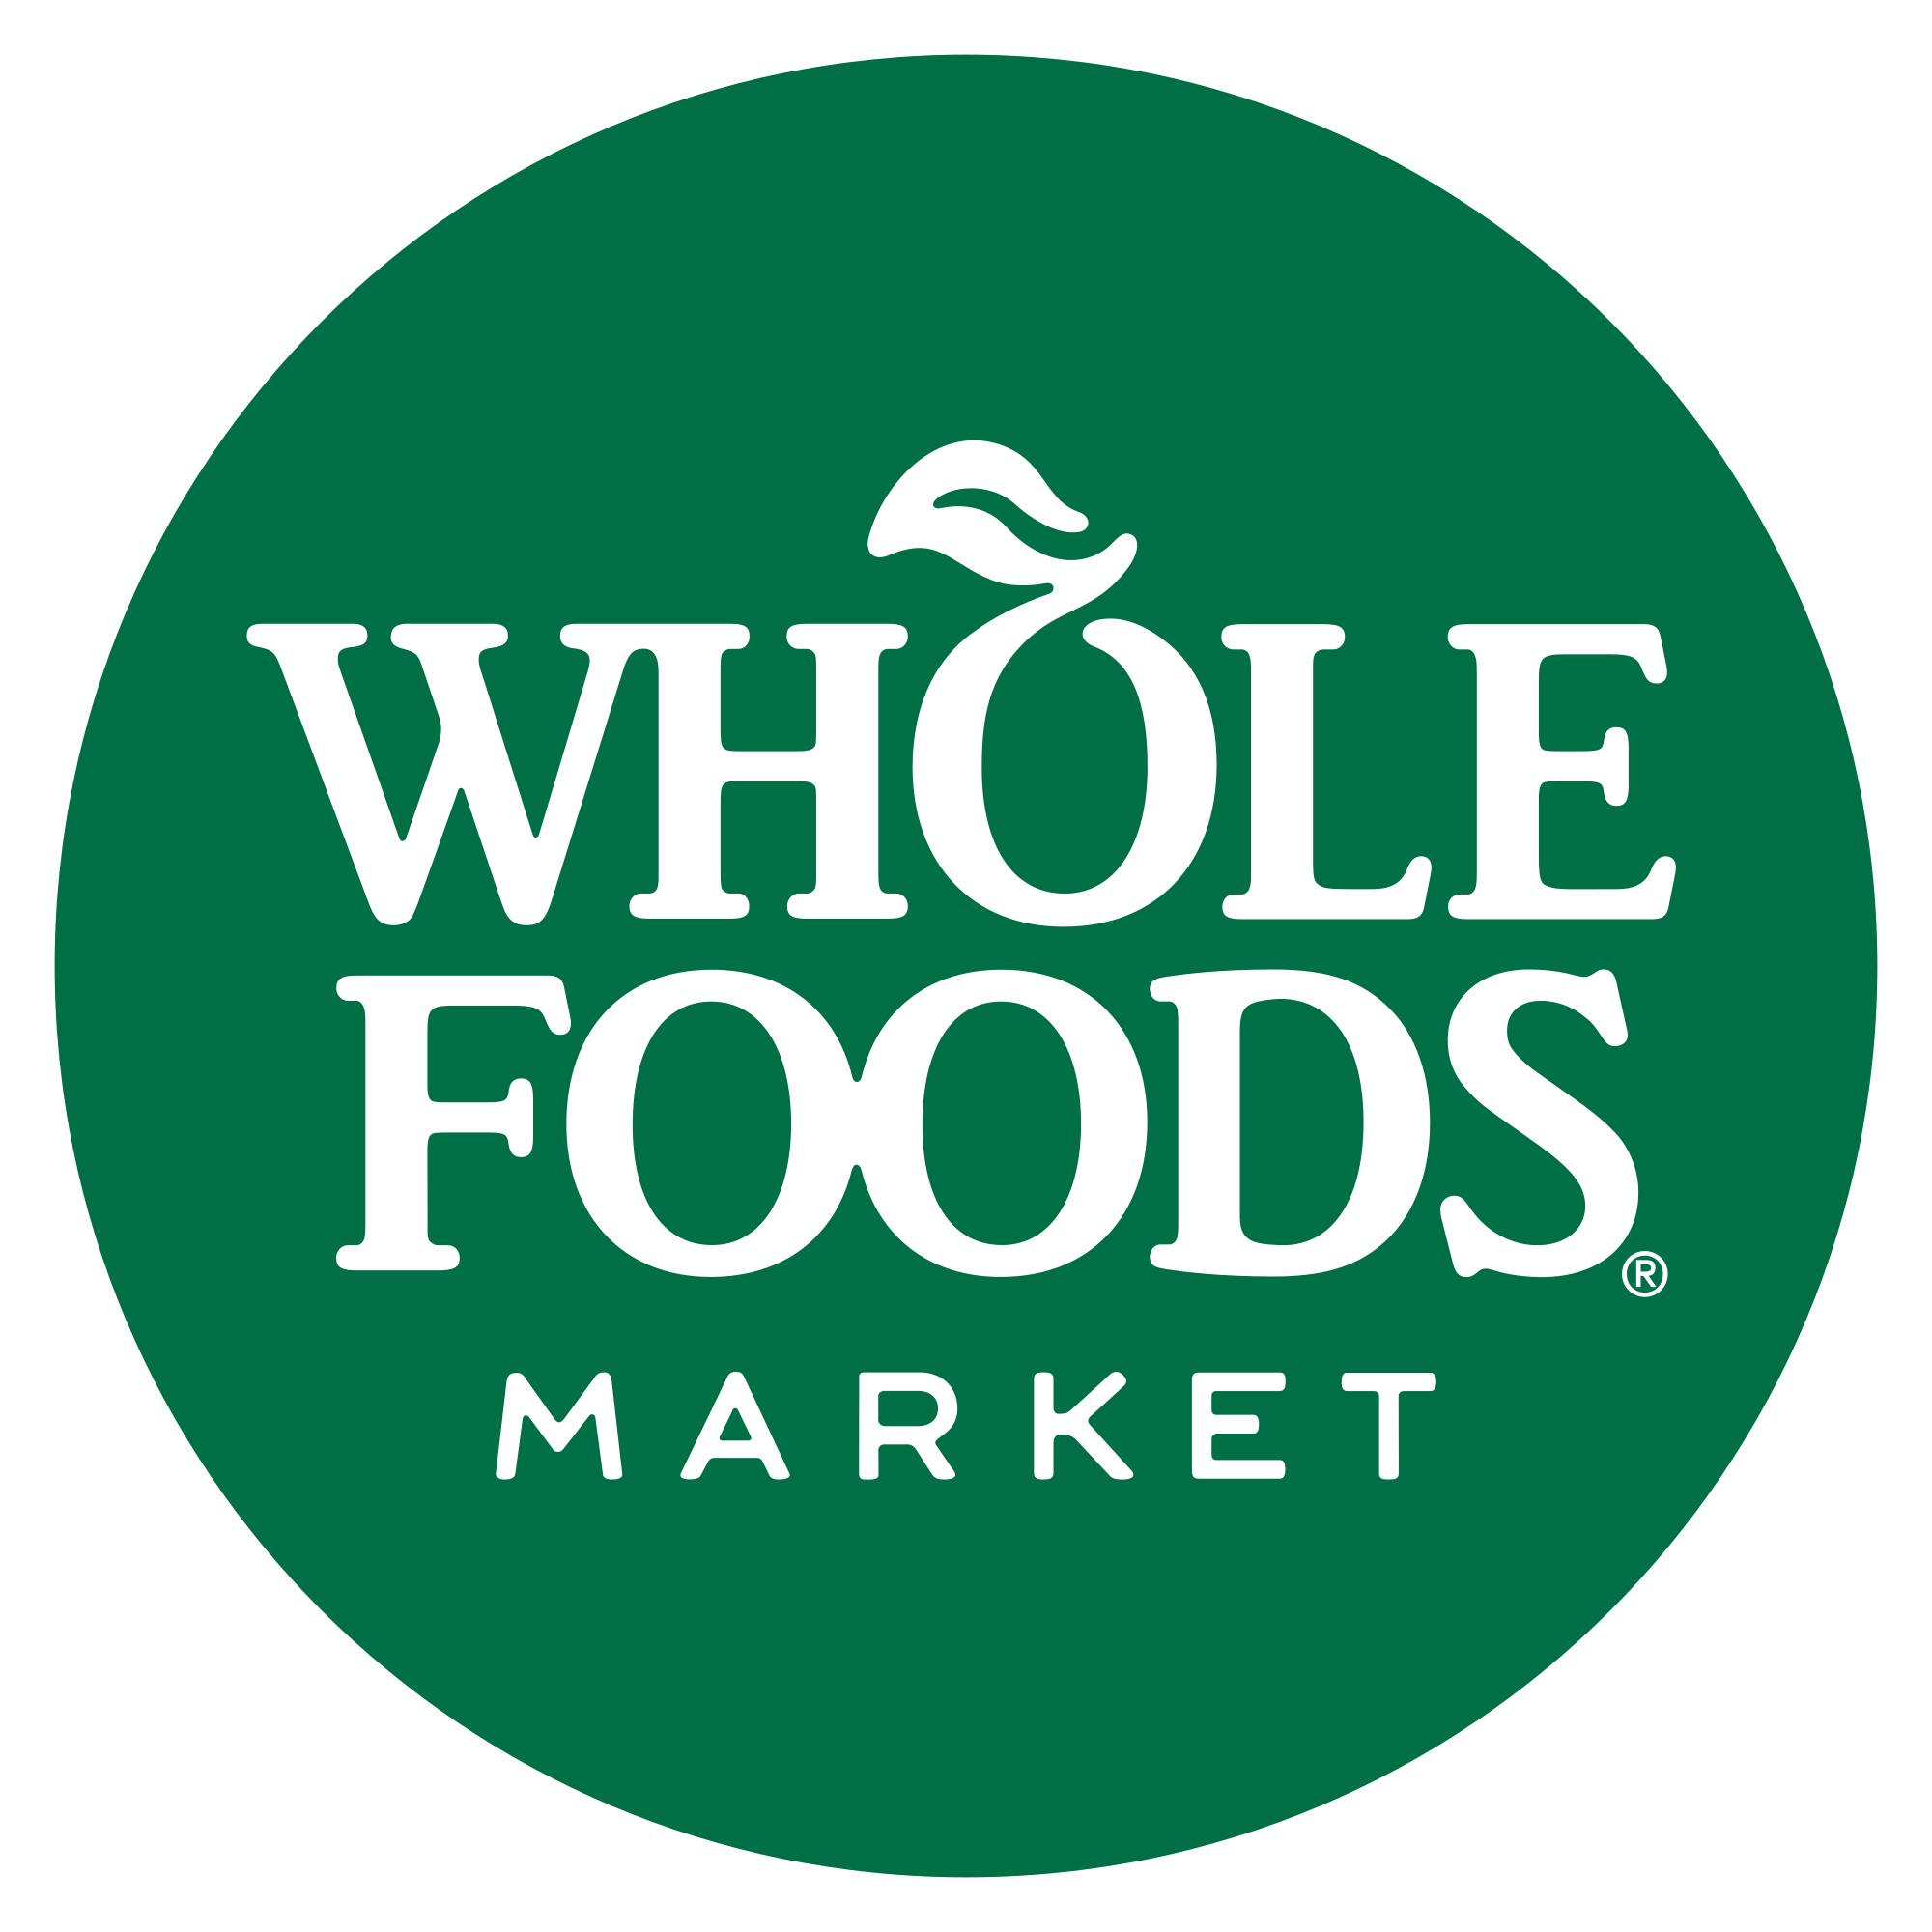 Whole Foods Market.png